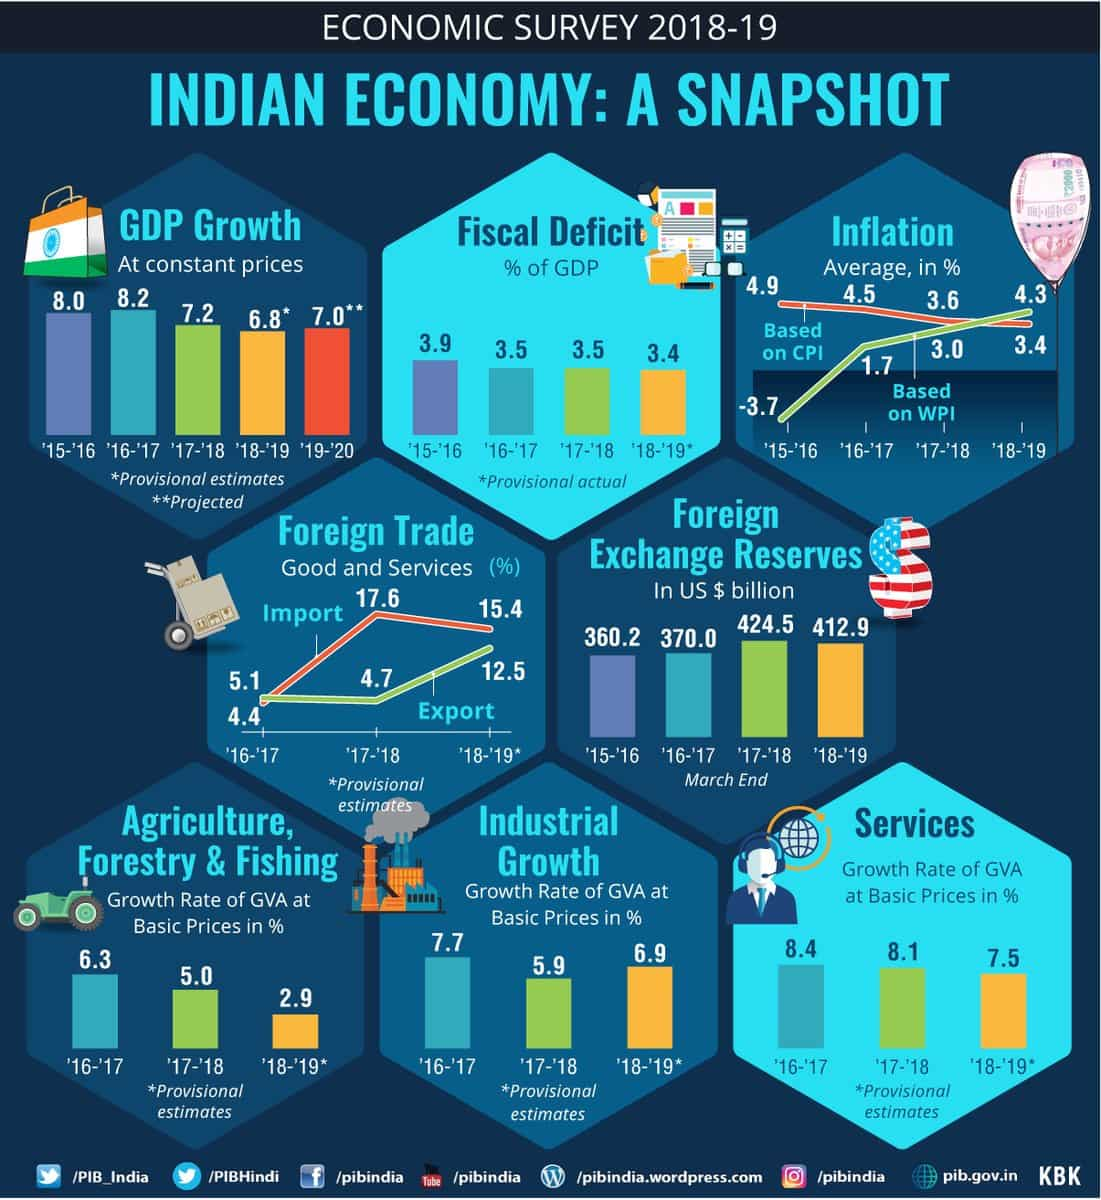 Fiscal deficit of 3% of GDP by FY 2020-21 & central government debt to 40% of GDP by 2024-25 is targeted in the Economic Survey.